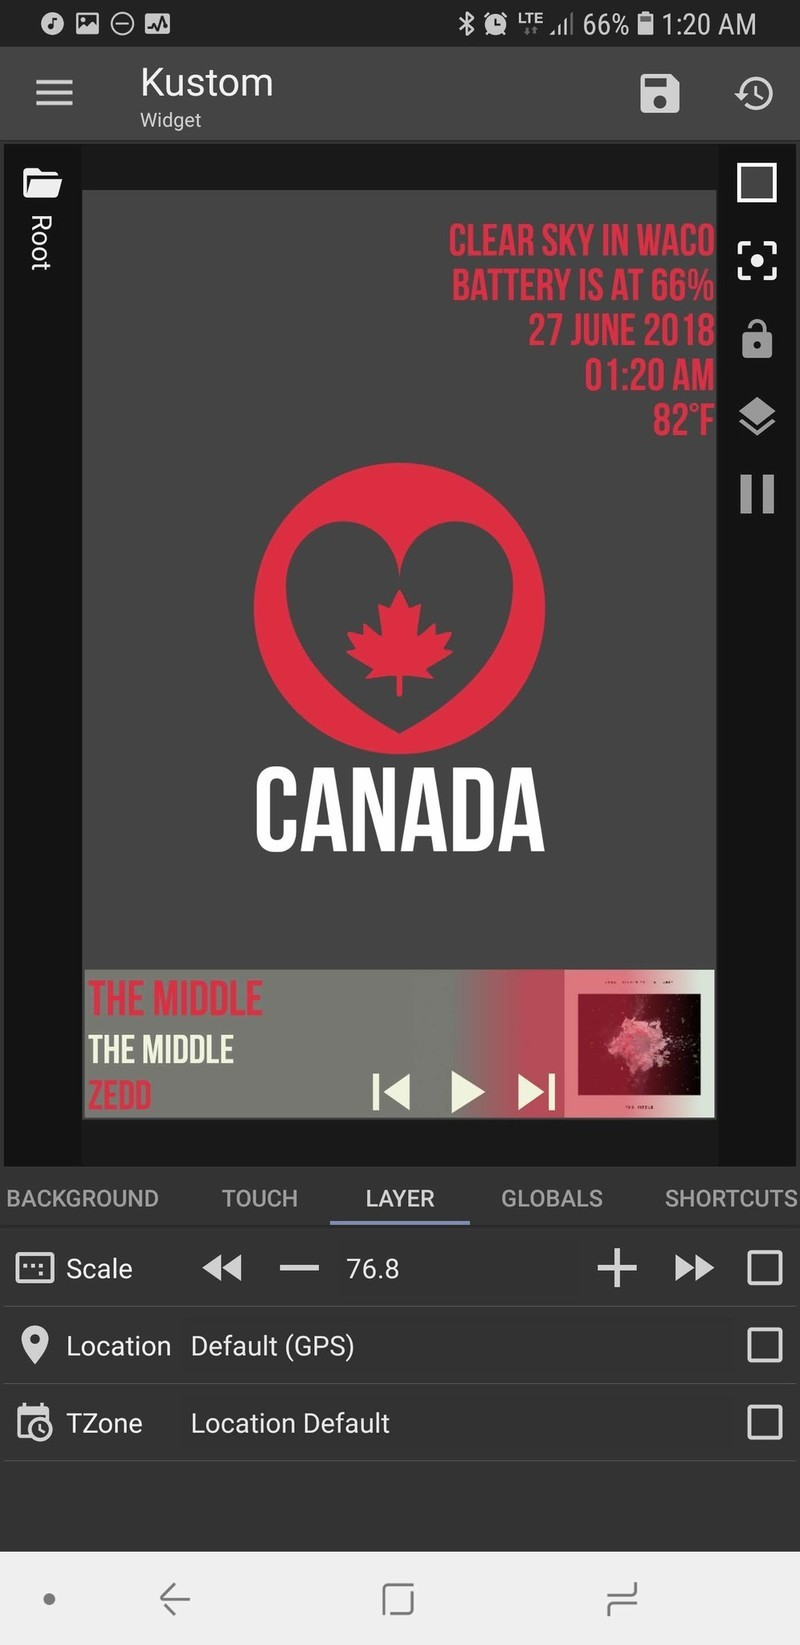 heart-canada-kwgt-adjust-1-layer-scale.j